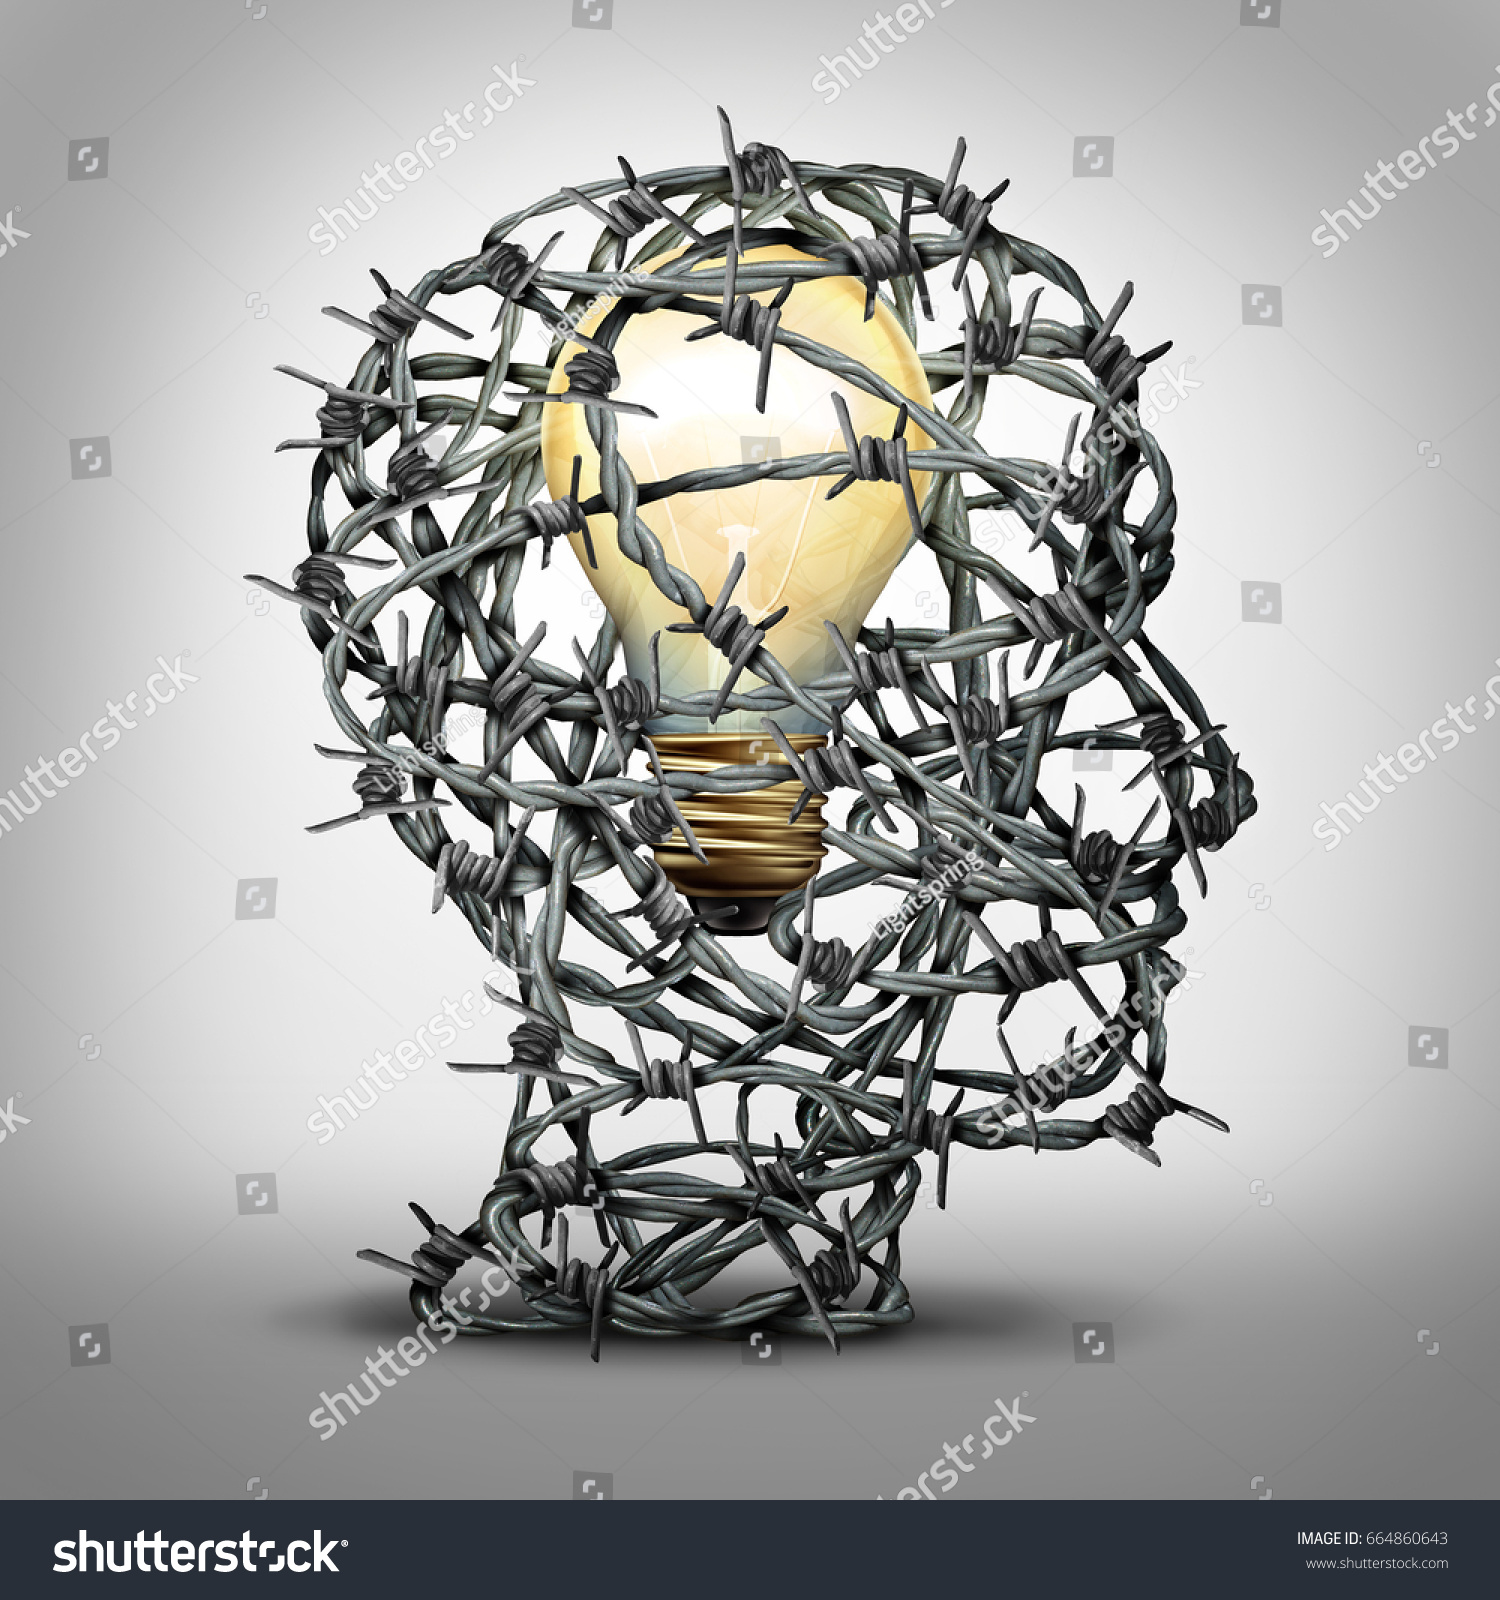 Protect Your Idea Business Thinking Concept Stock Illustration ...